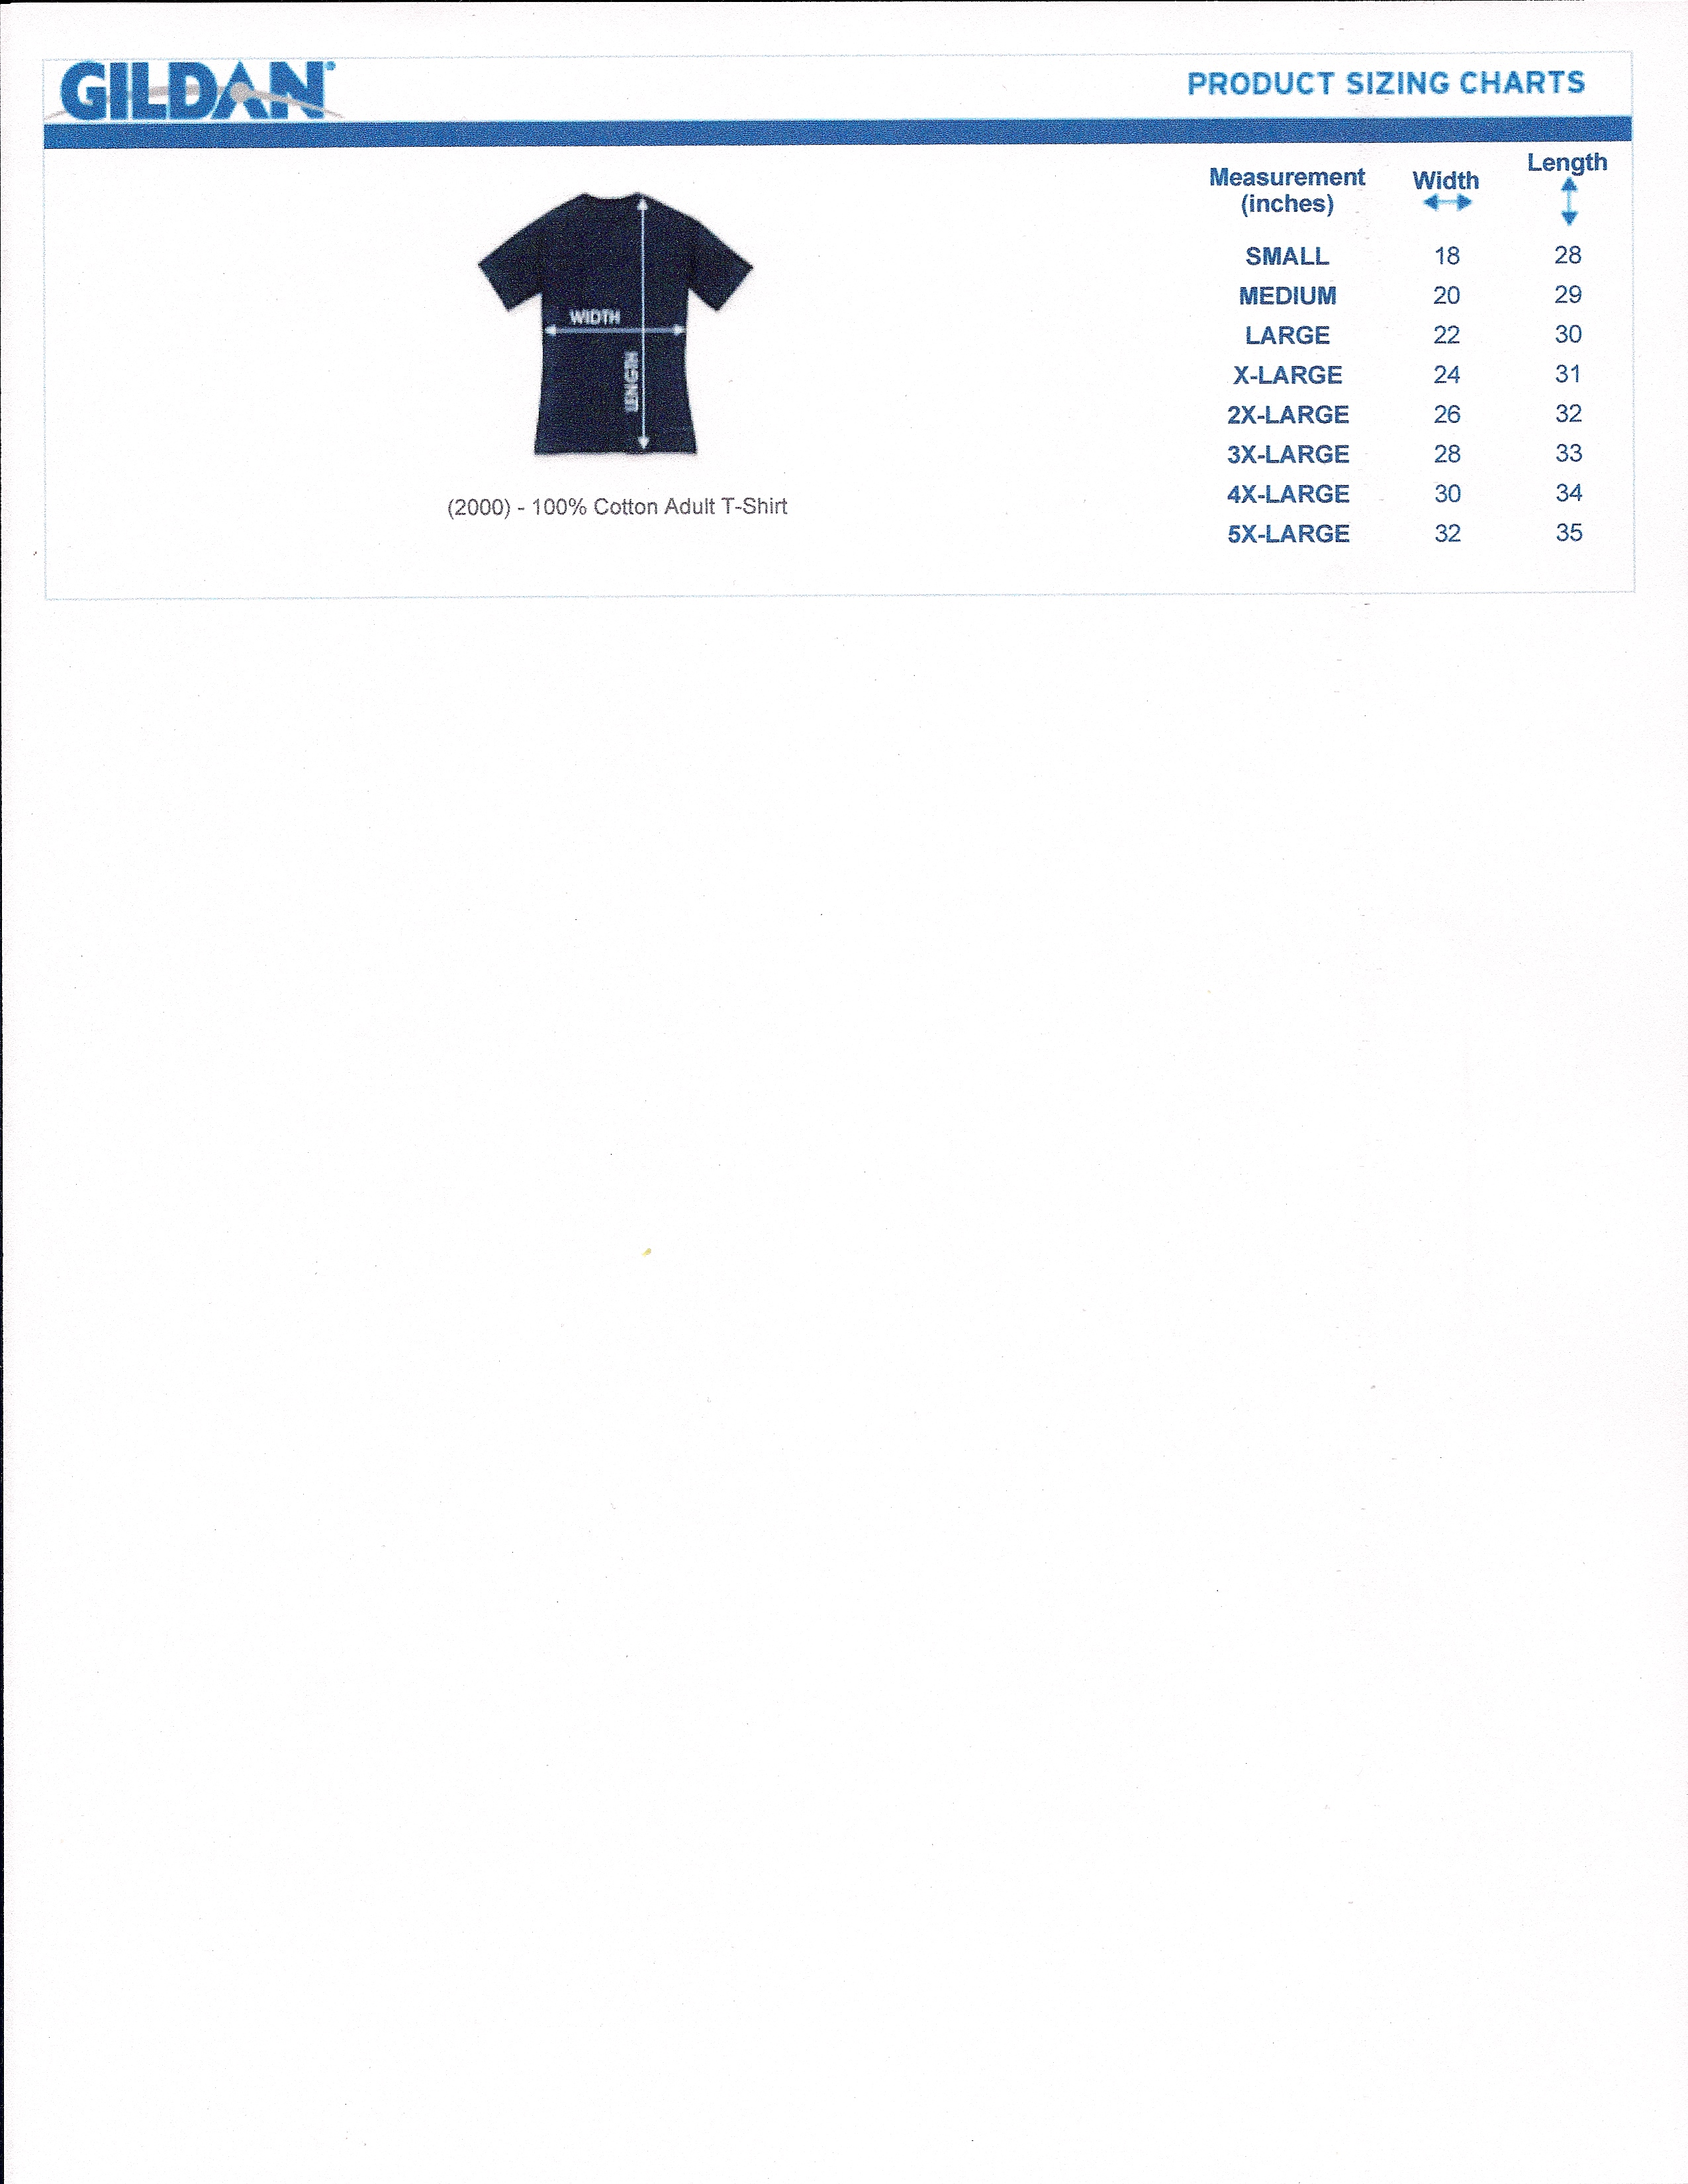 Zzzzzz romeoville rampage women 39 s ice hockey club for Gildan brand t shirt size chart